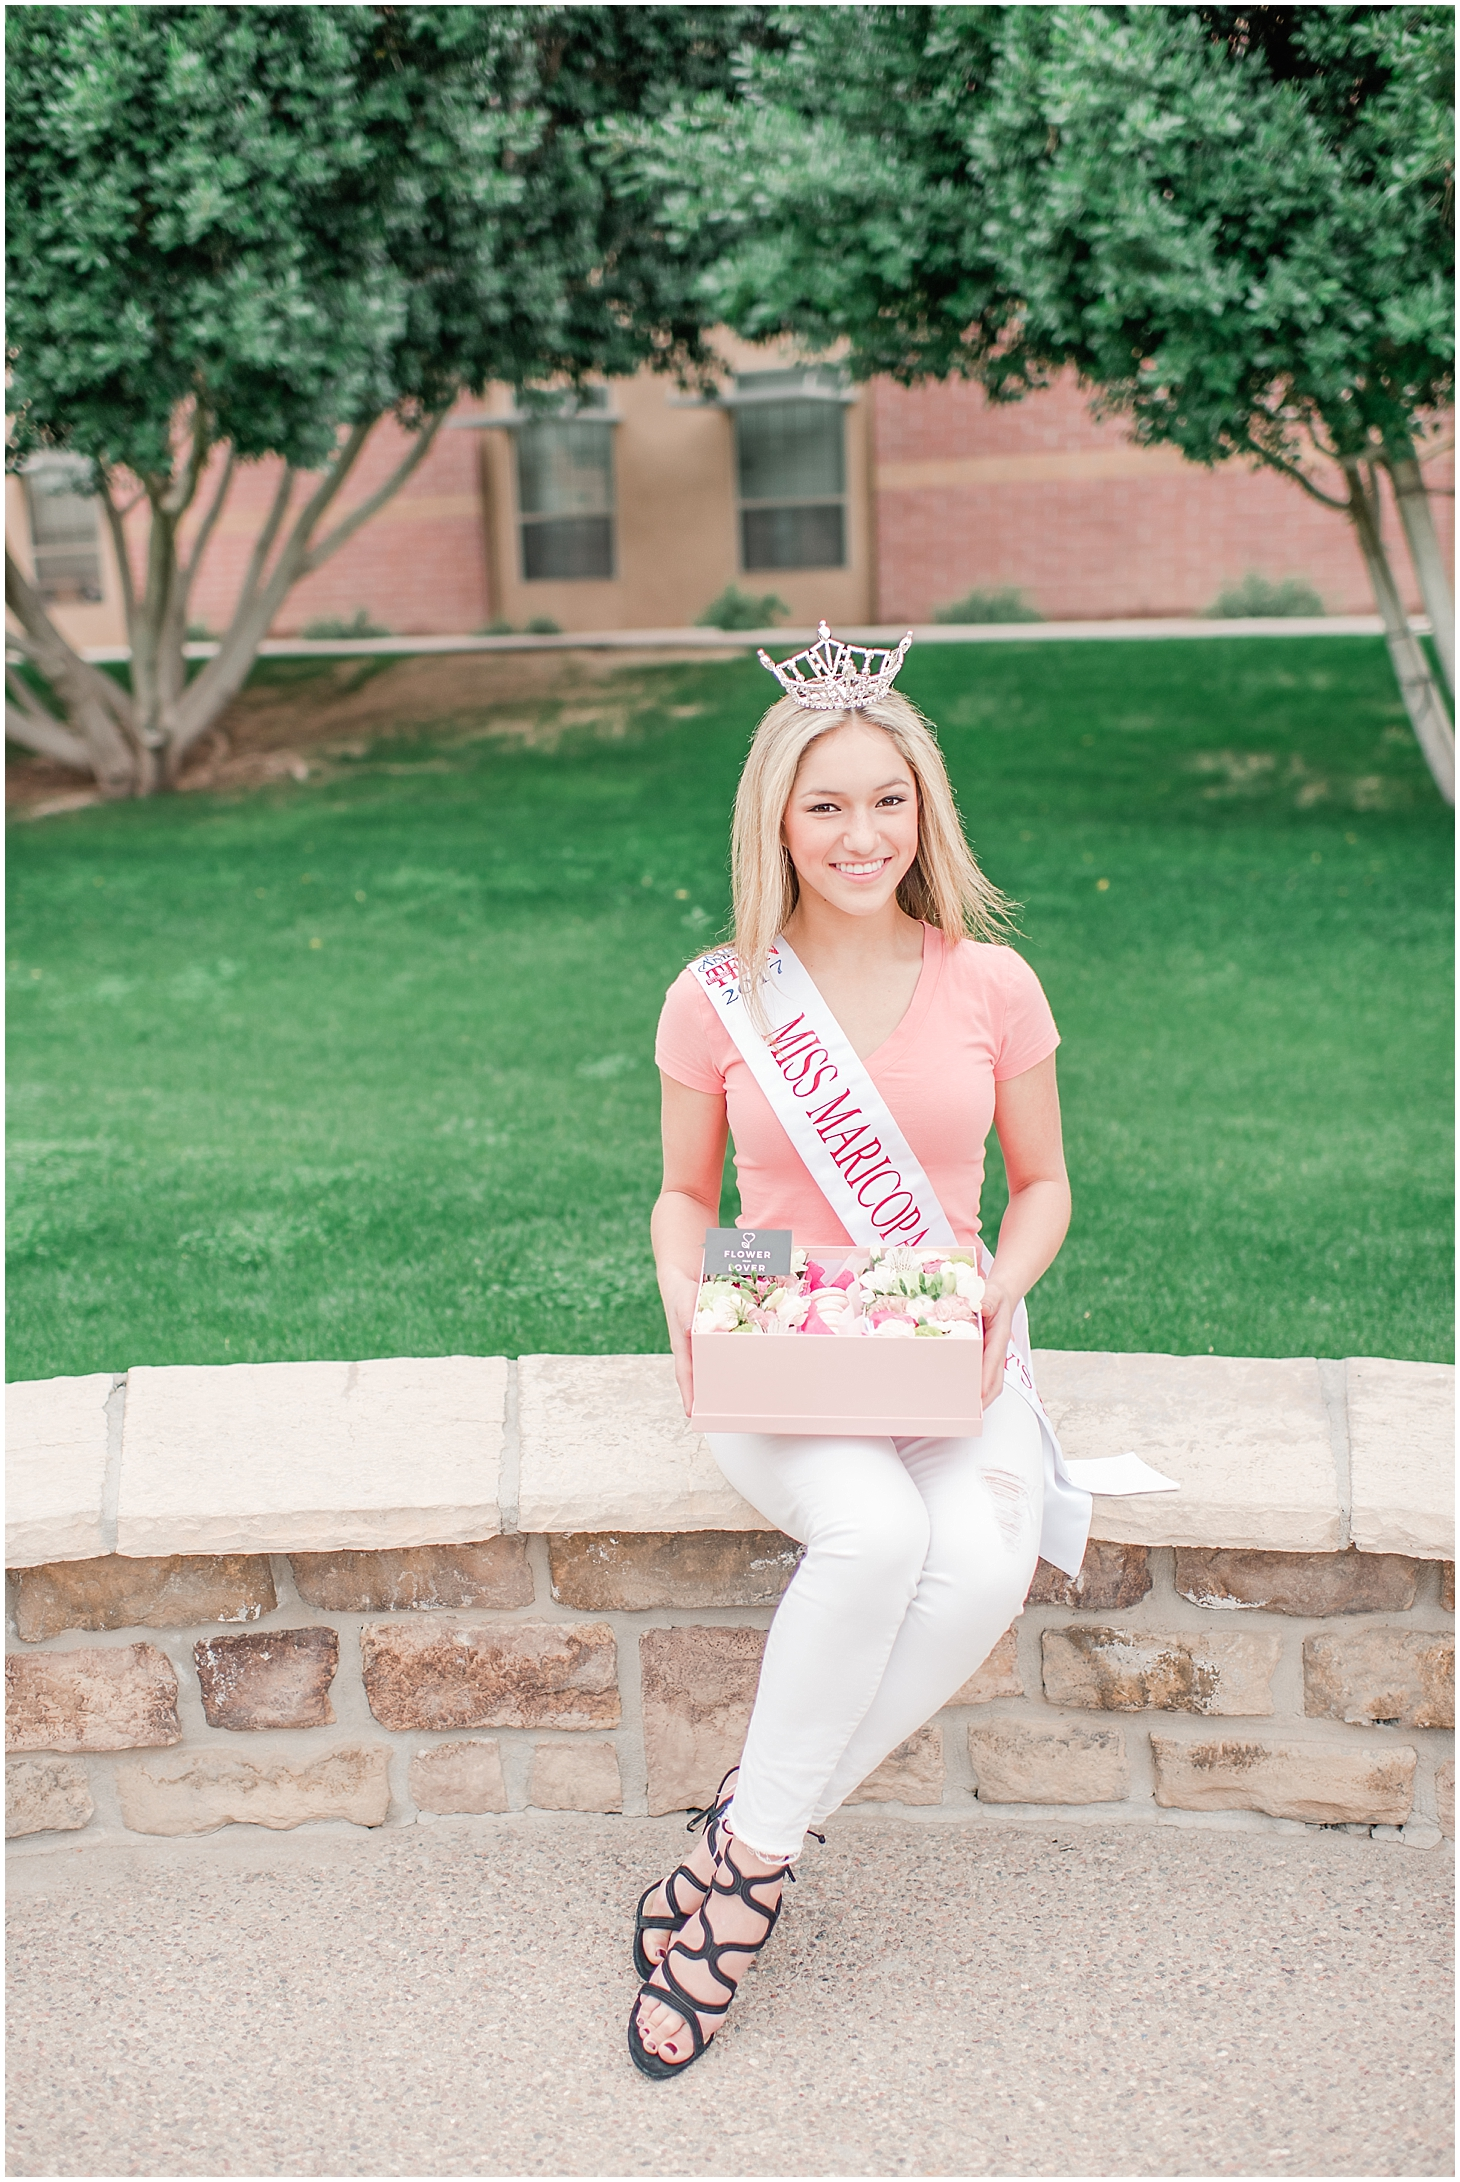 Beautiful box filled with an arrangement of lovely flowers and delicious French macarons made with love by Flower from Lower, and held by Miss Maricopa's Outstanding Teen Ela Wootton. Photo taken by Jade Min Photography.